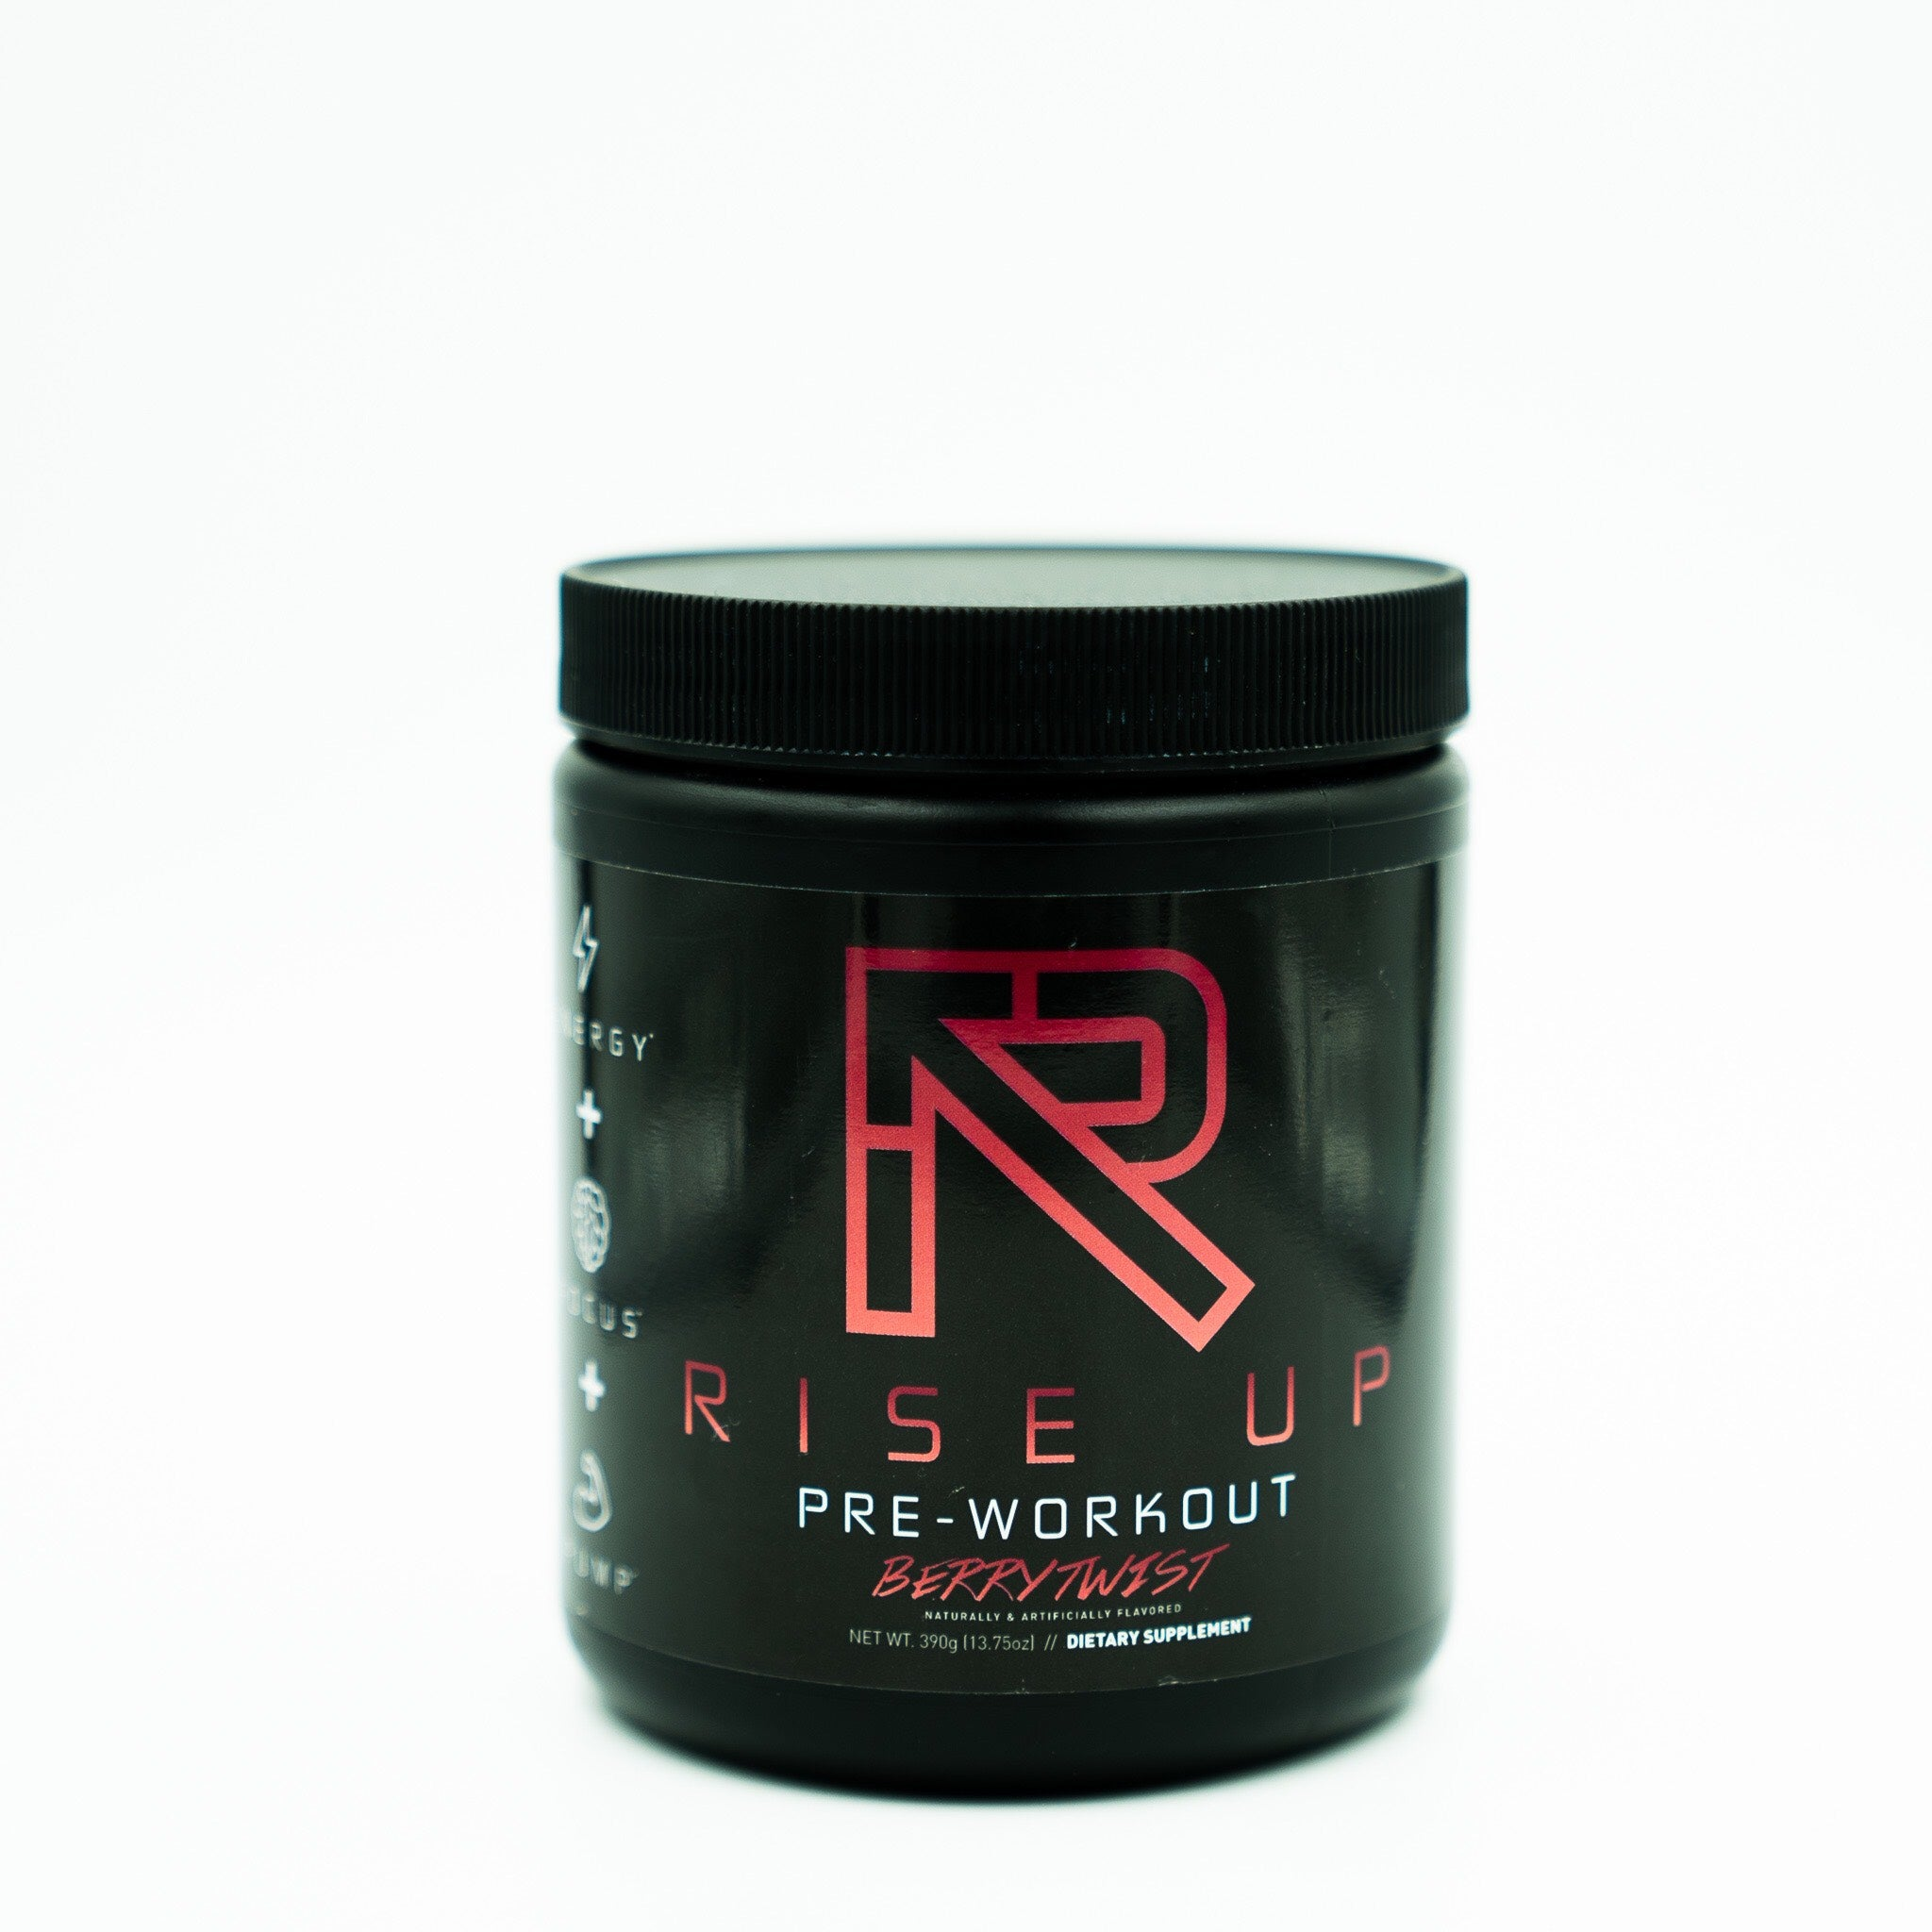 Rise Up Pre-Workout 30srv Berry Twist